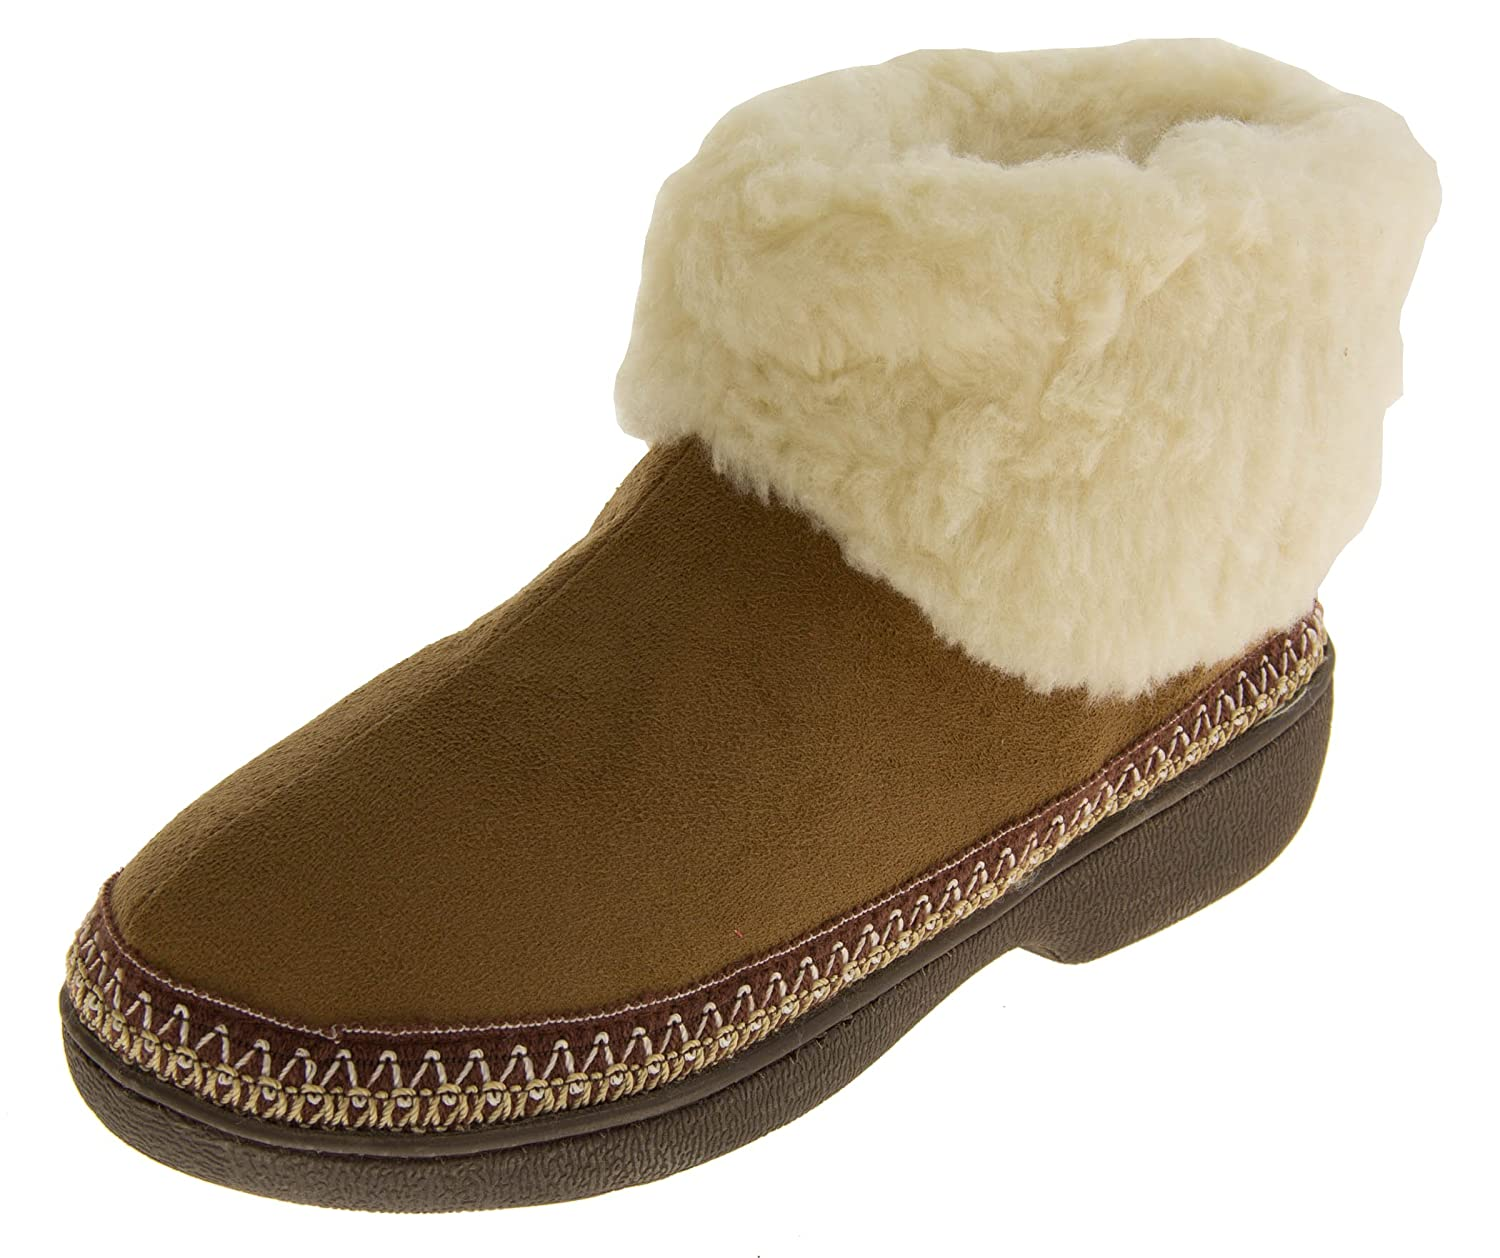 Femmes doublure - Chaussons bottes semelle extérieur doublure semelle chaude Brun bottes Clair dc3c6ed - conorscully.space